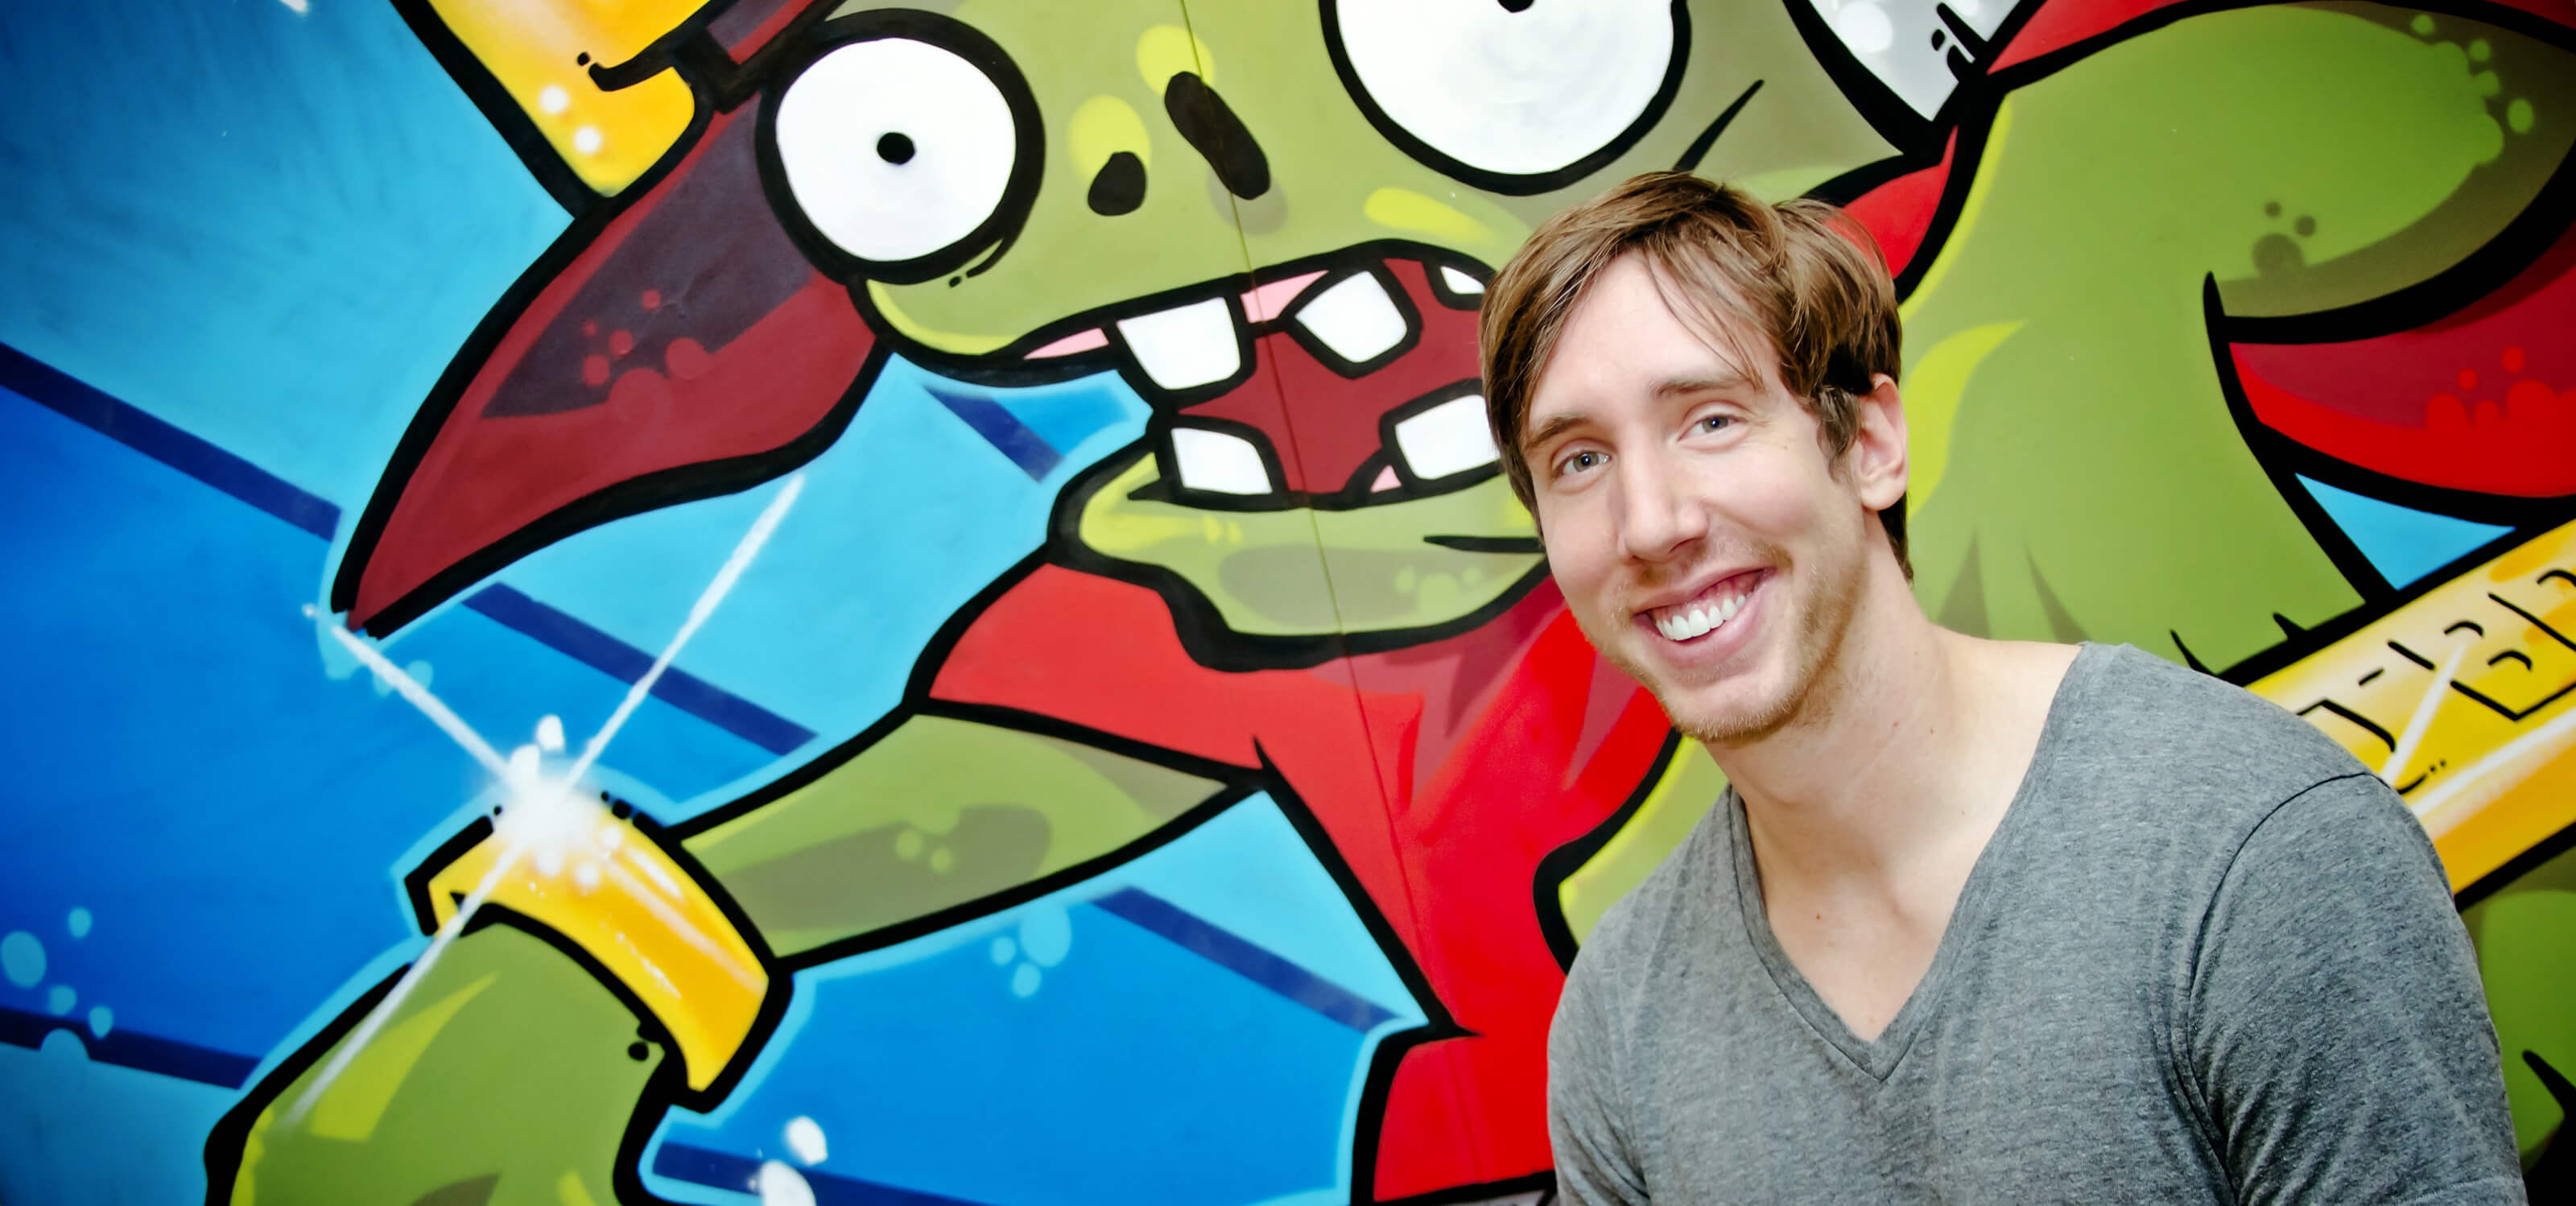 DigiPen BFA alumnus Mark Barrett smiling in front of large grafffiti-style wall painting of a zombie at PopCap's office